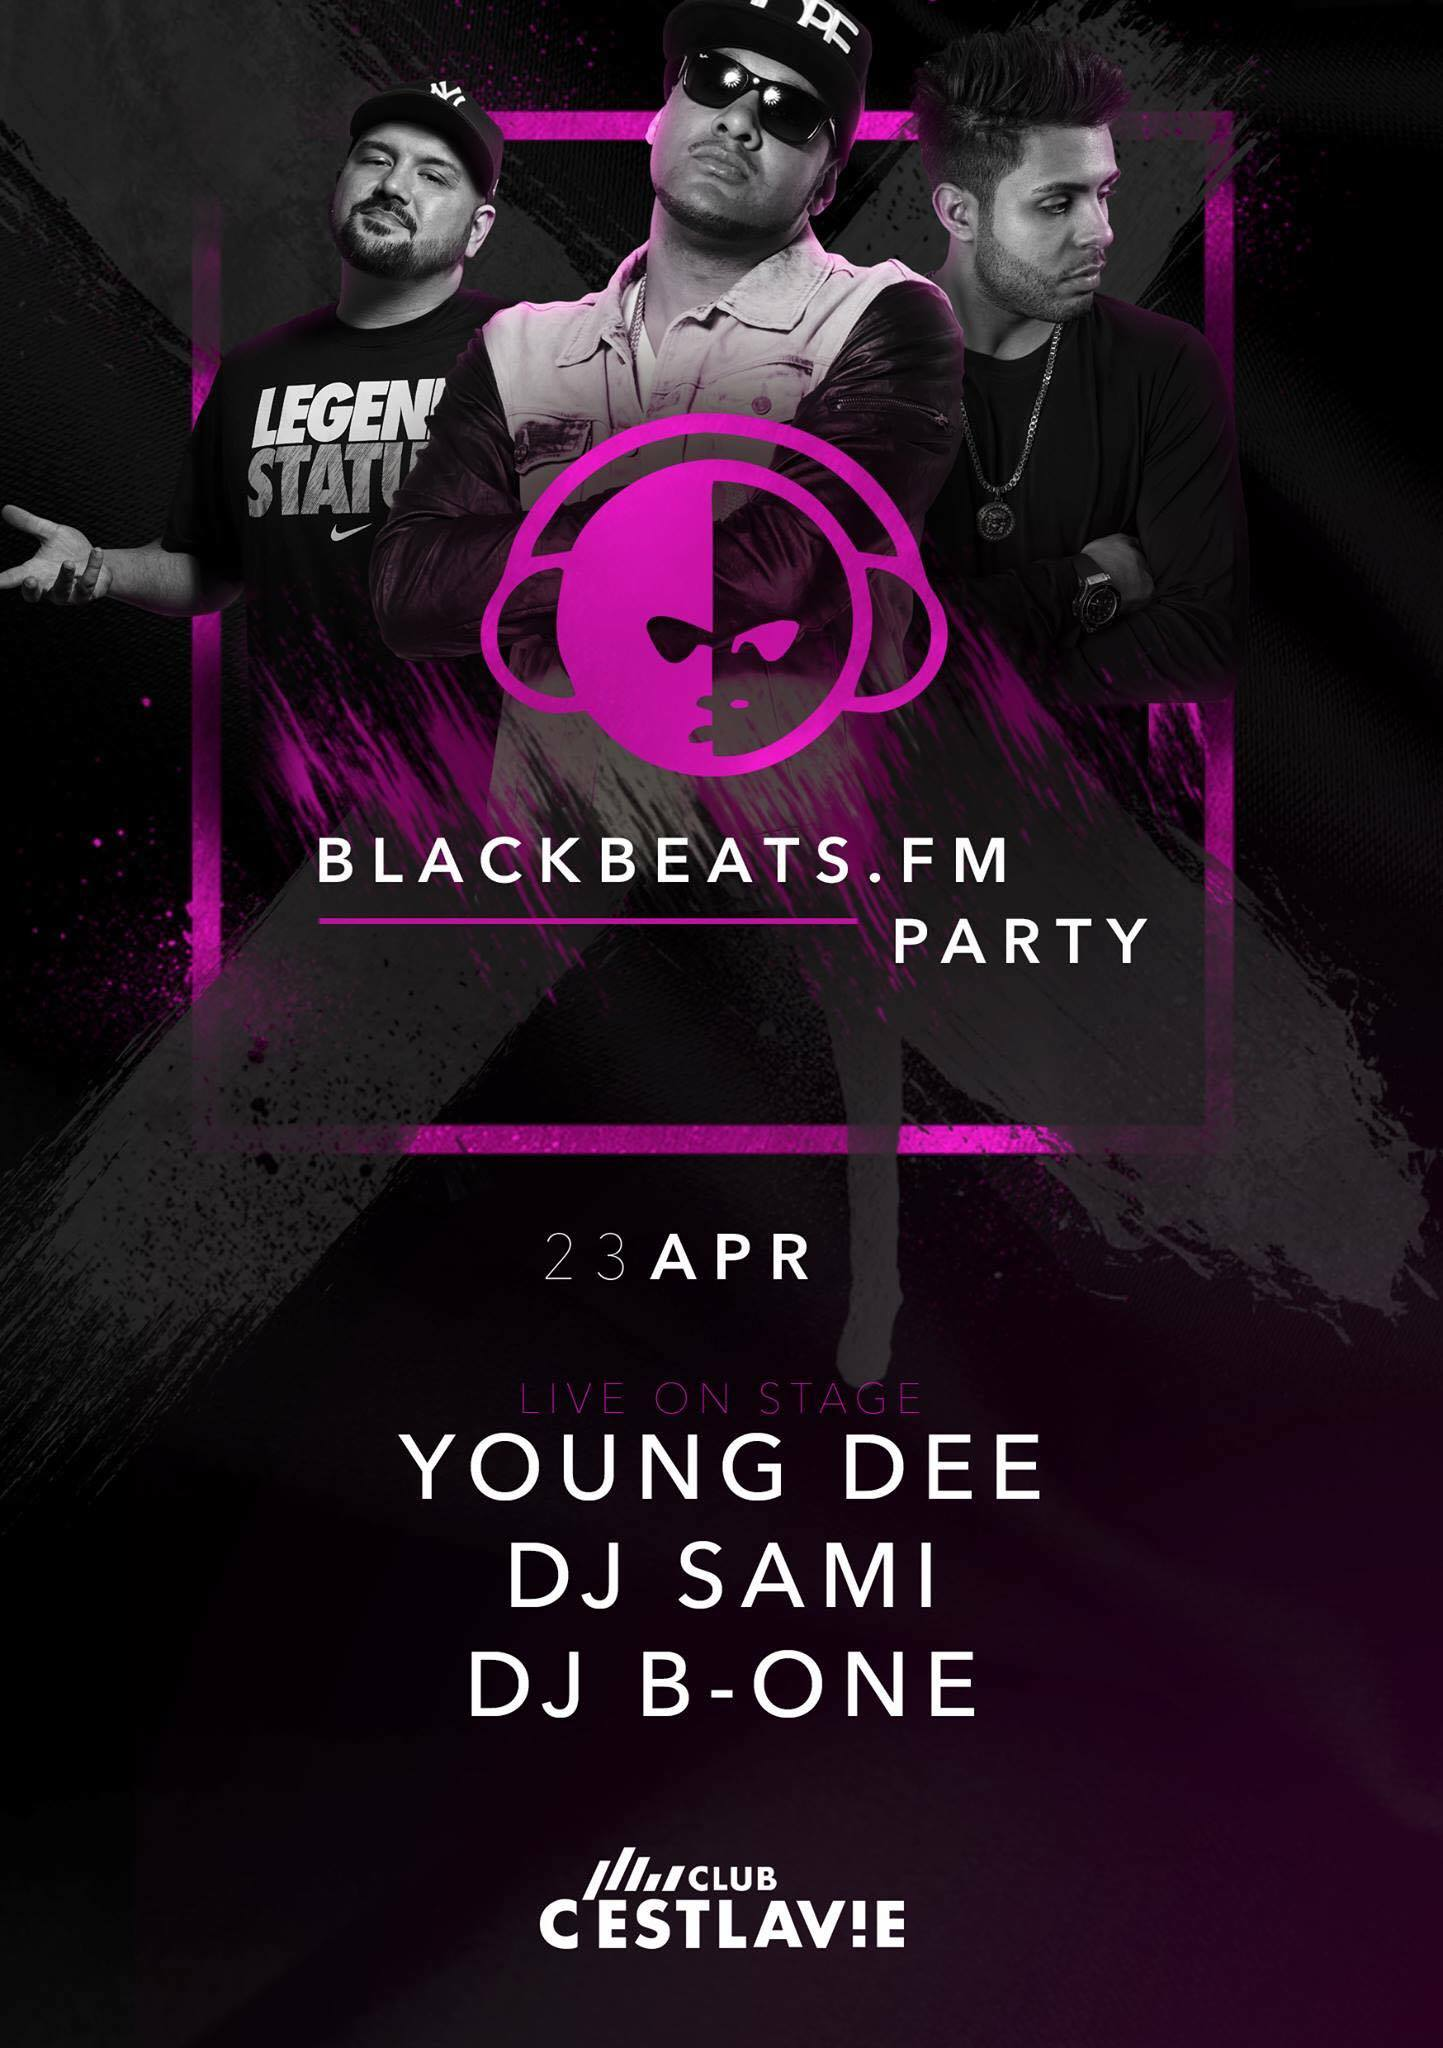 YOUNG DEE LIVE // C'est La Vie Club Wertheim // BLACKBEATS.FM